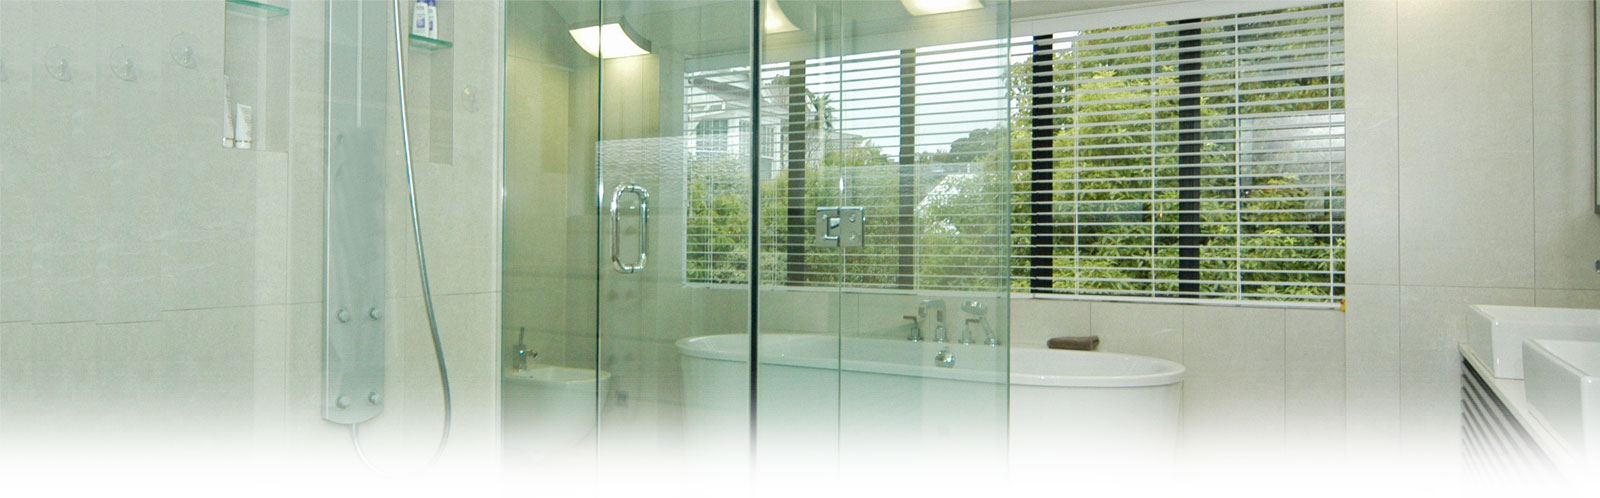 Frameless Glass Shower Doors Custom Glass Railings Glass Repair - Bathroom shower door repair